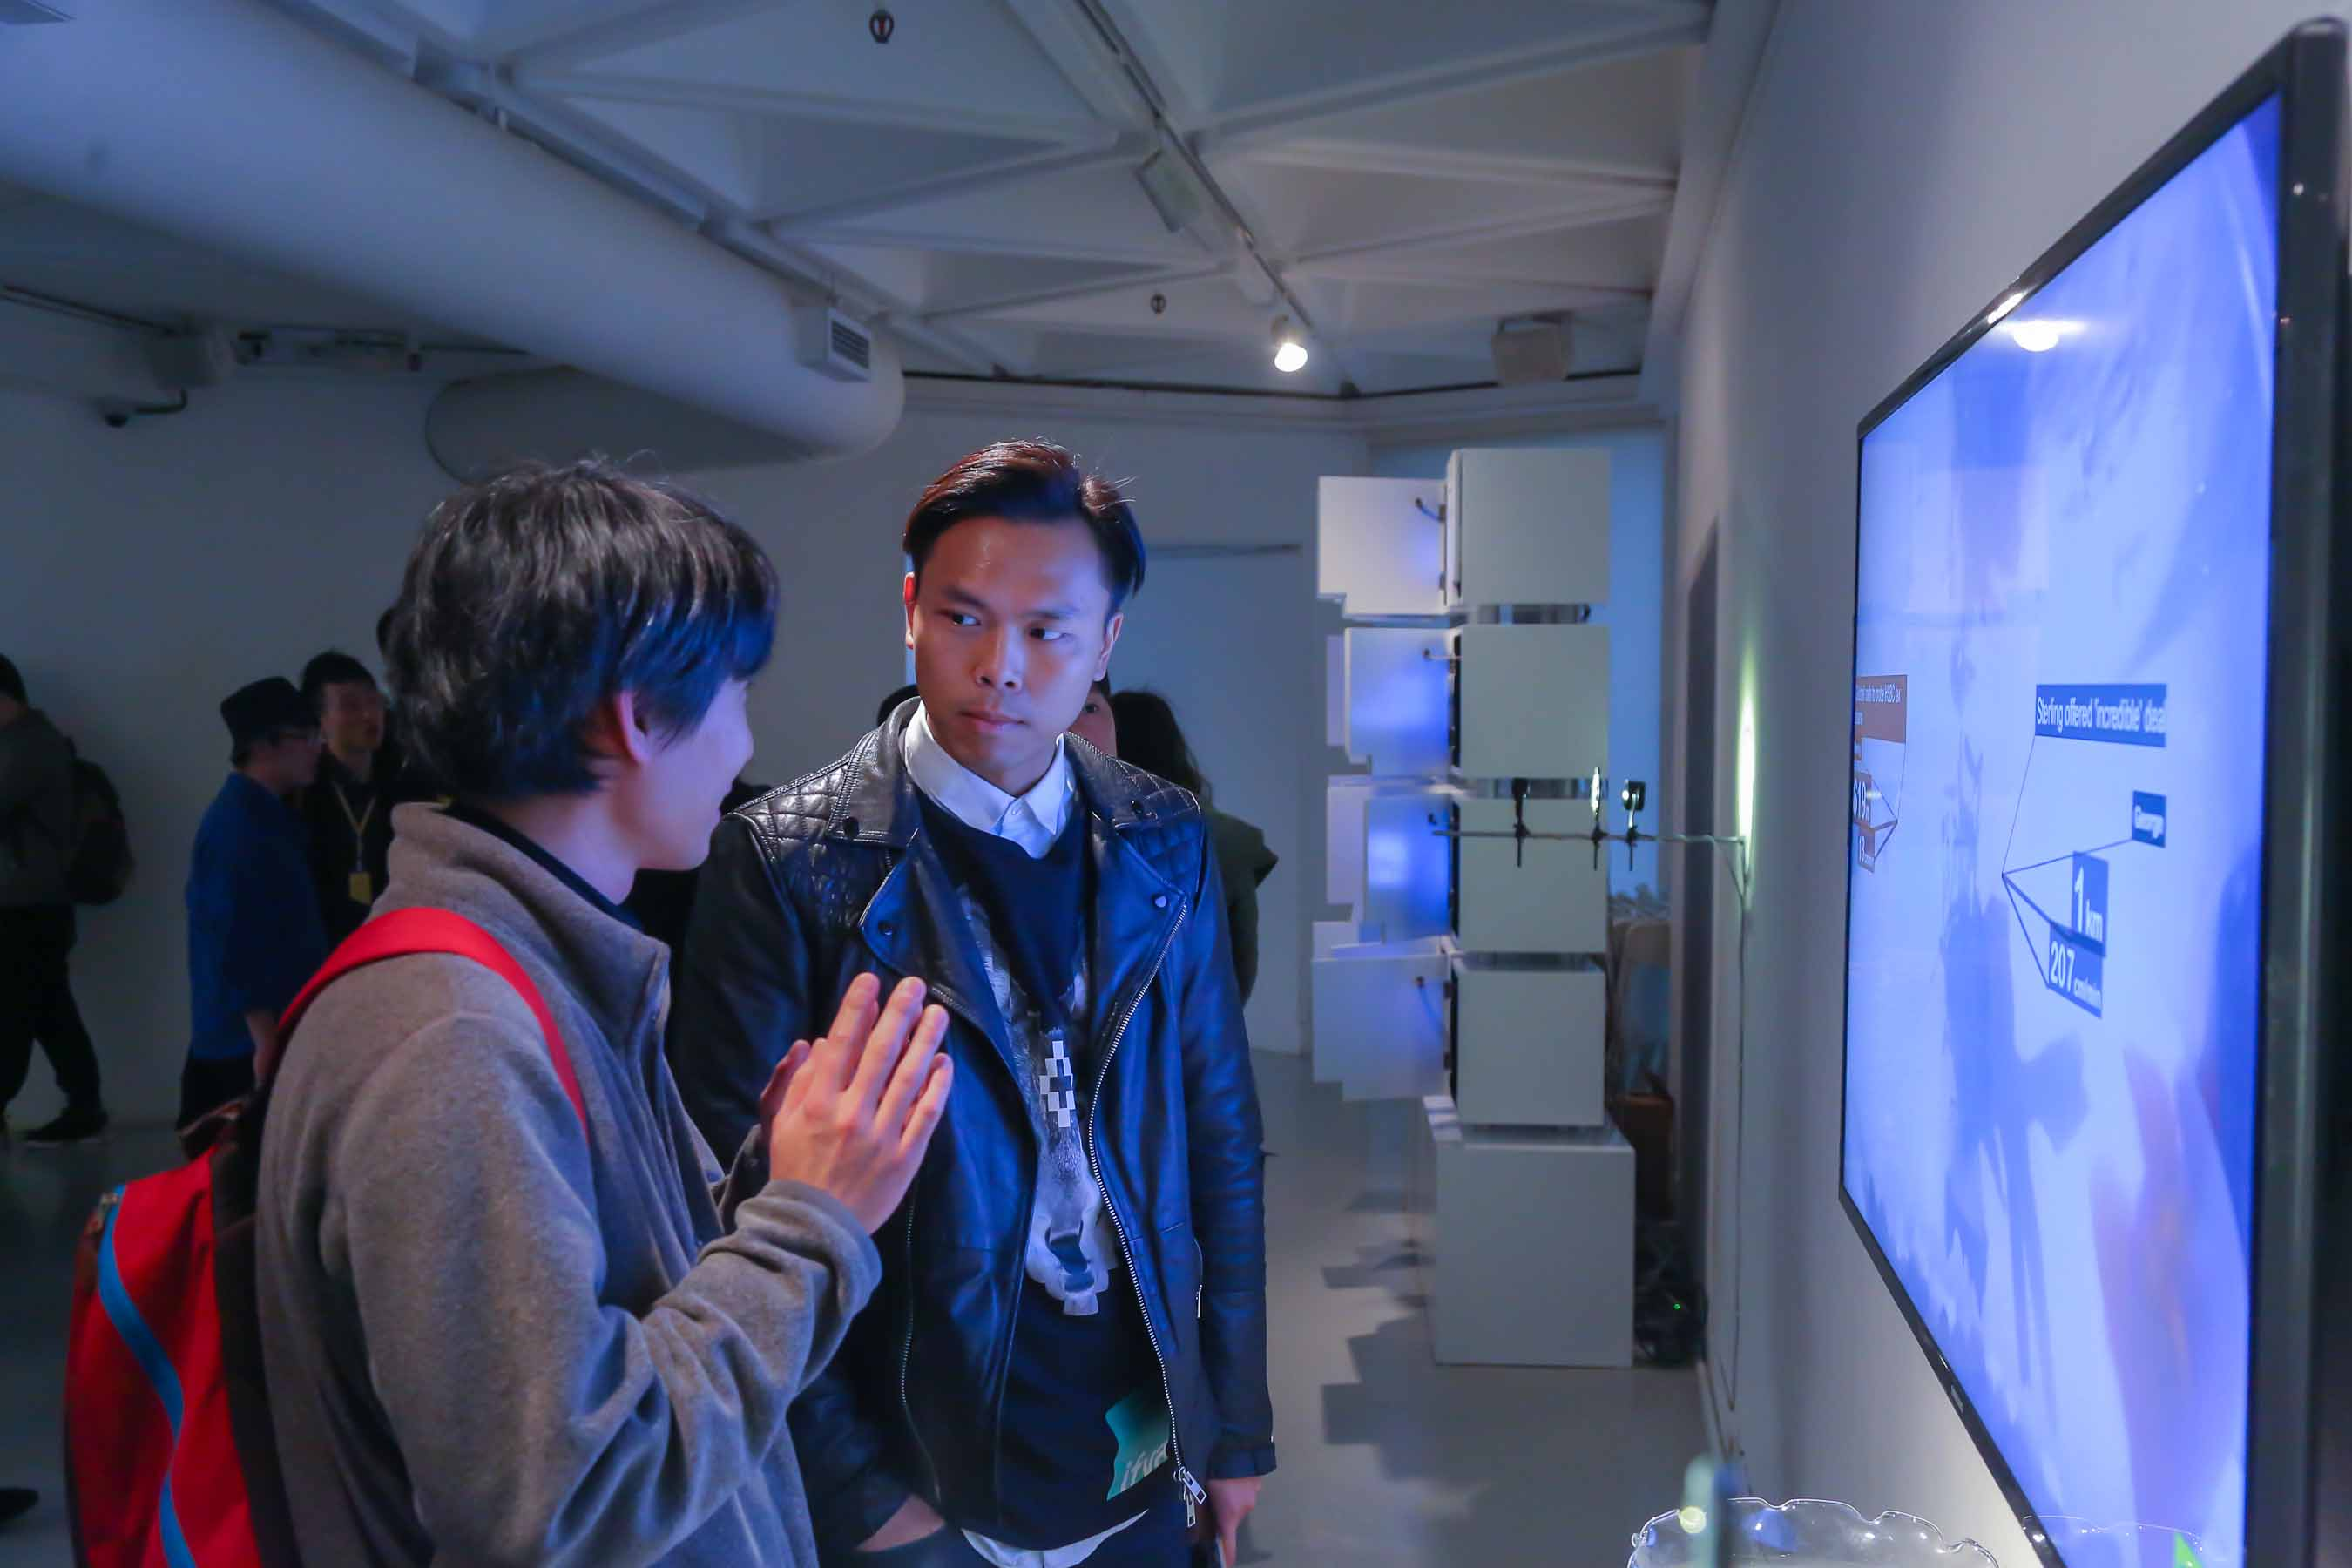 The finalists Yuto Hasebe and Samuel Yip participated in one of the finalist works, <i>Surveillance</i>